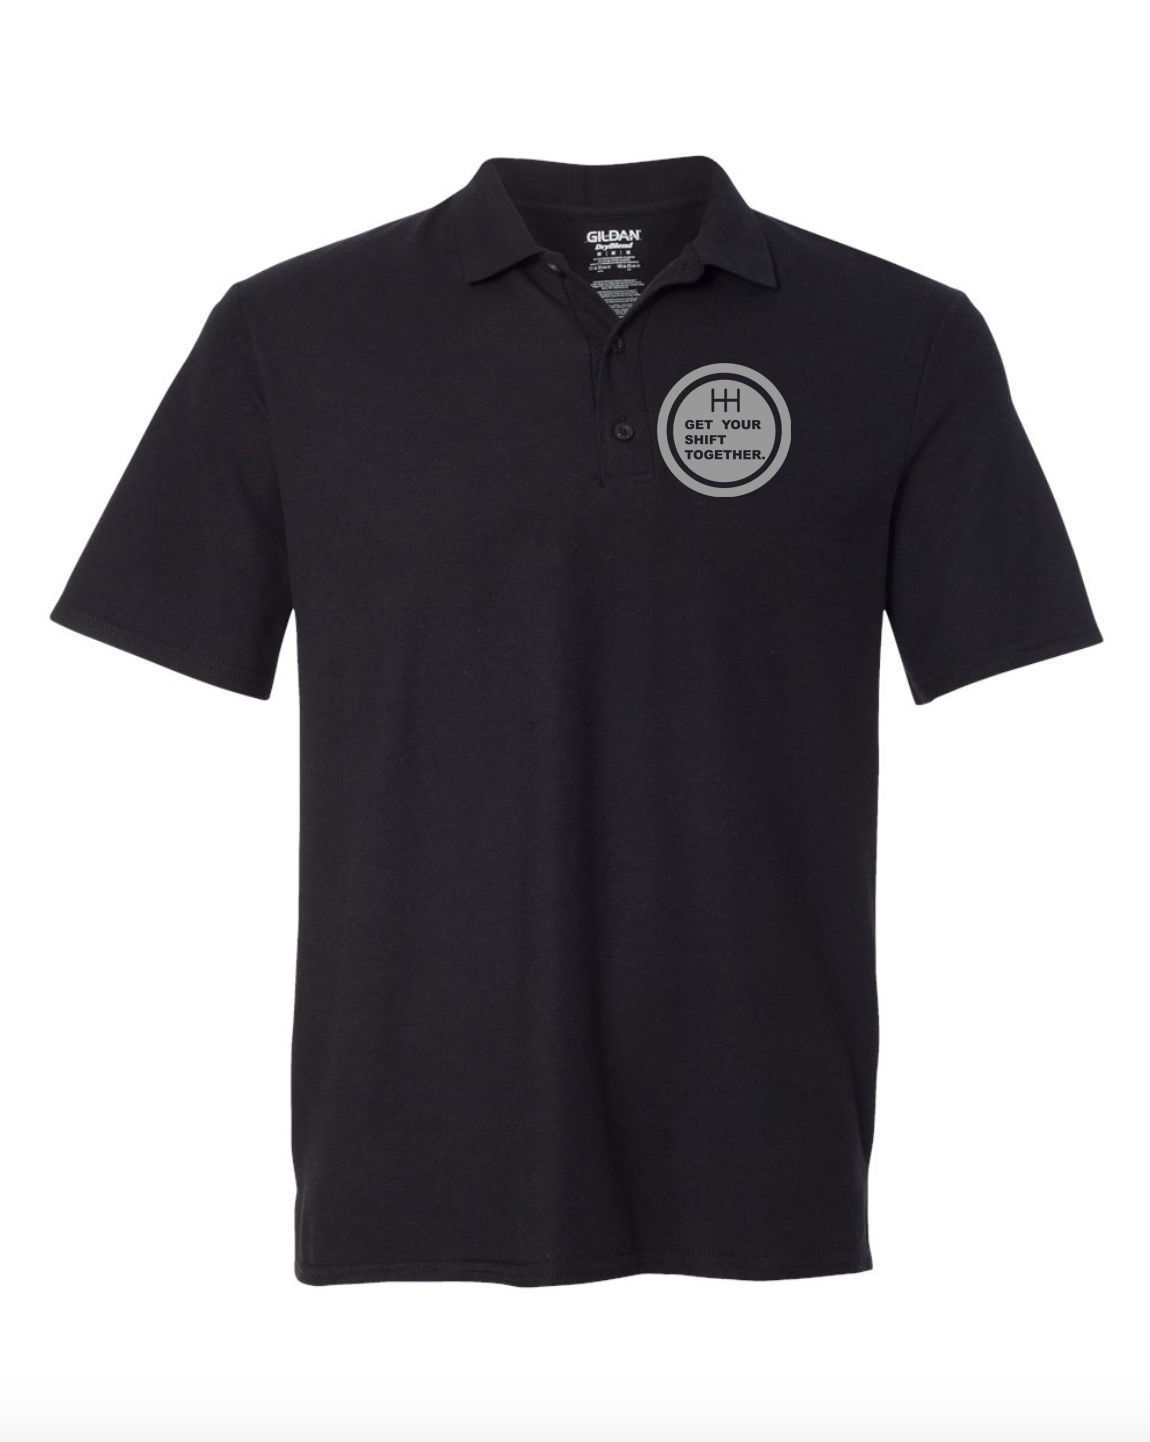 Get Your Shift Together Black POLO T-Shirt